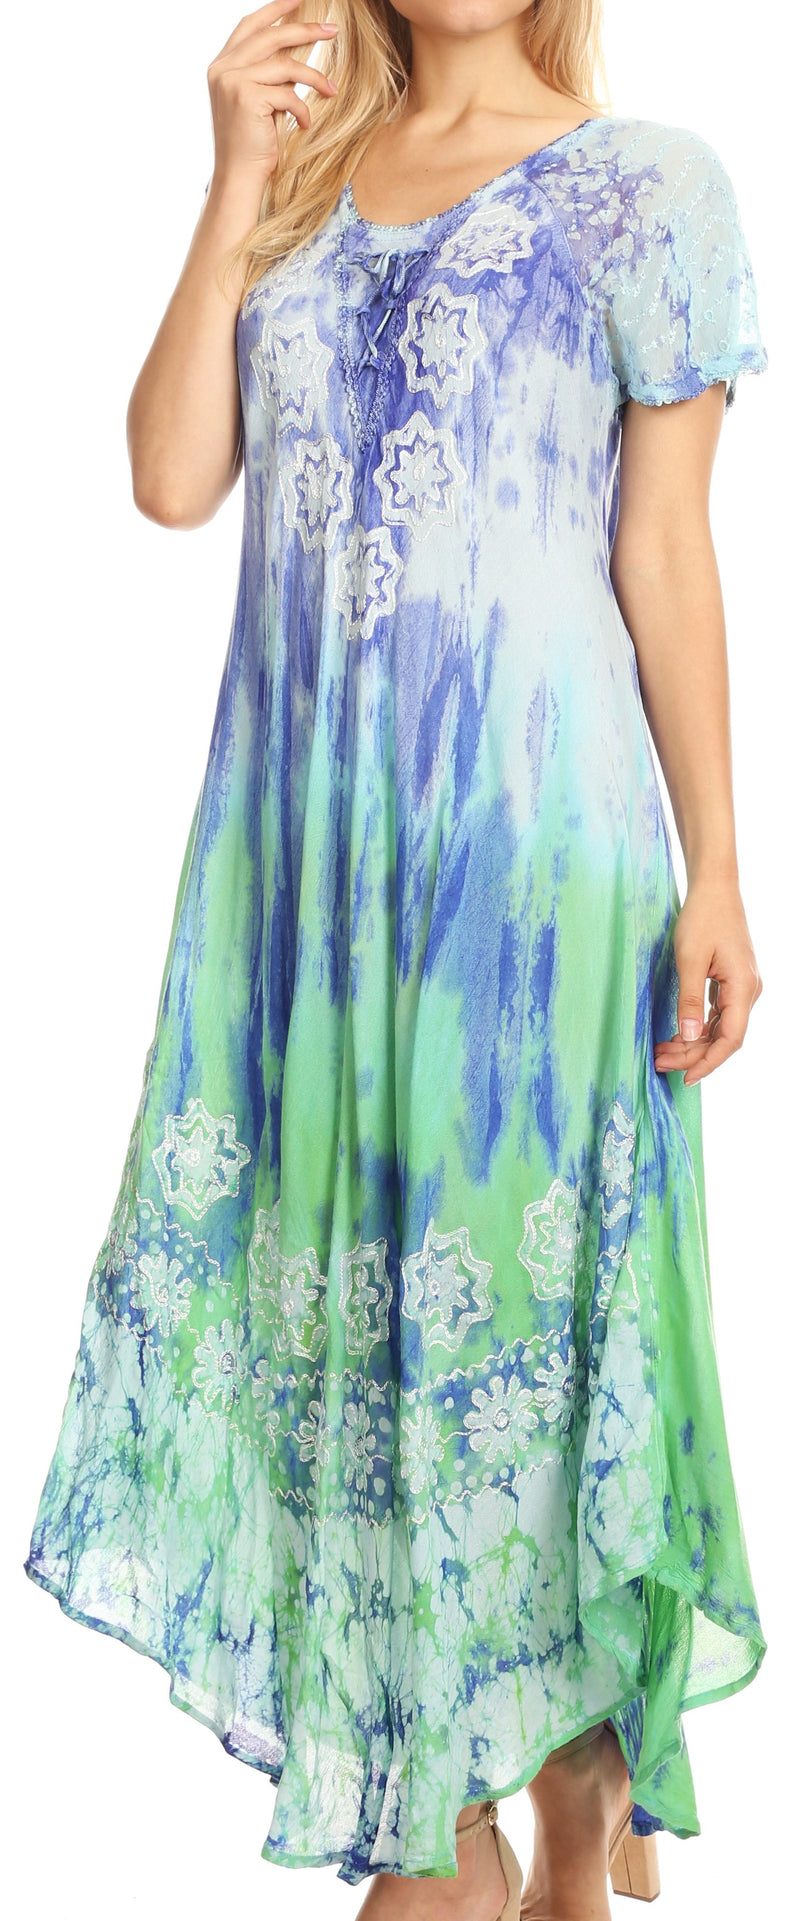 group-Royal Blue / Turquoise (Sakkas Sofia Women's Flowy Summer Maxi Beach Dress Tie-dye w/Batik & Short Sleeves)